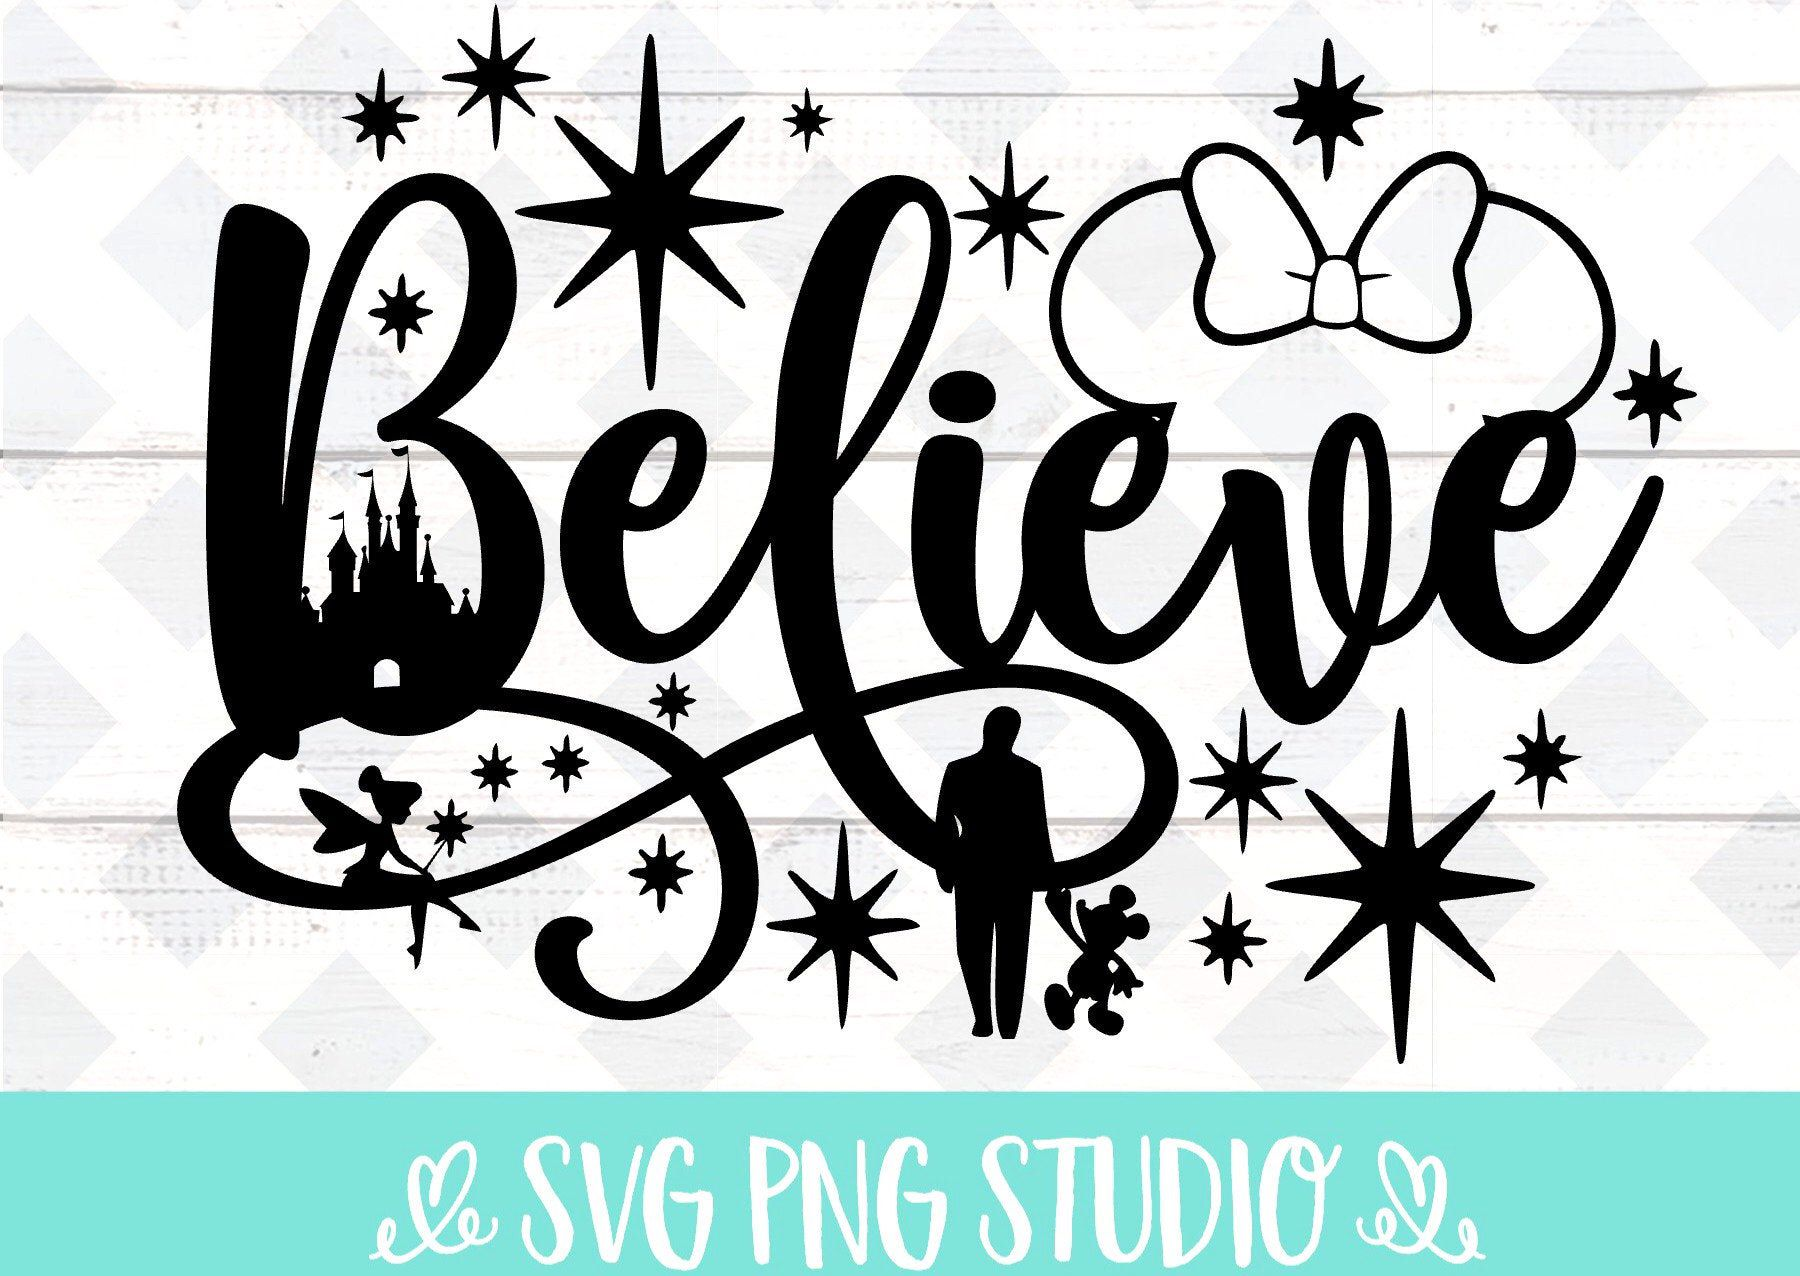 Believe in Magic svg inspired by Disney svg PNG